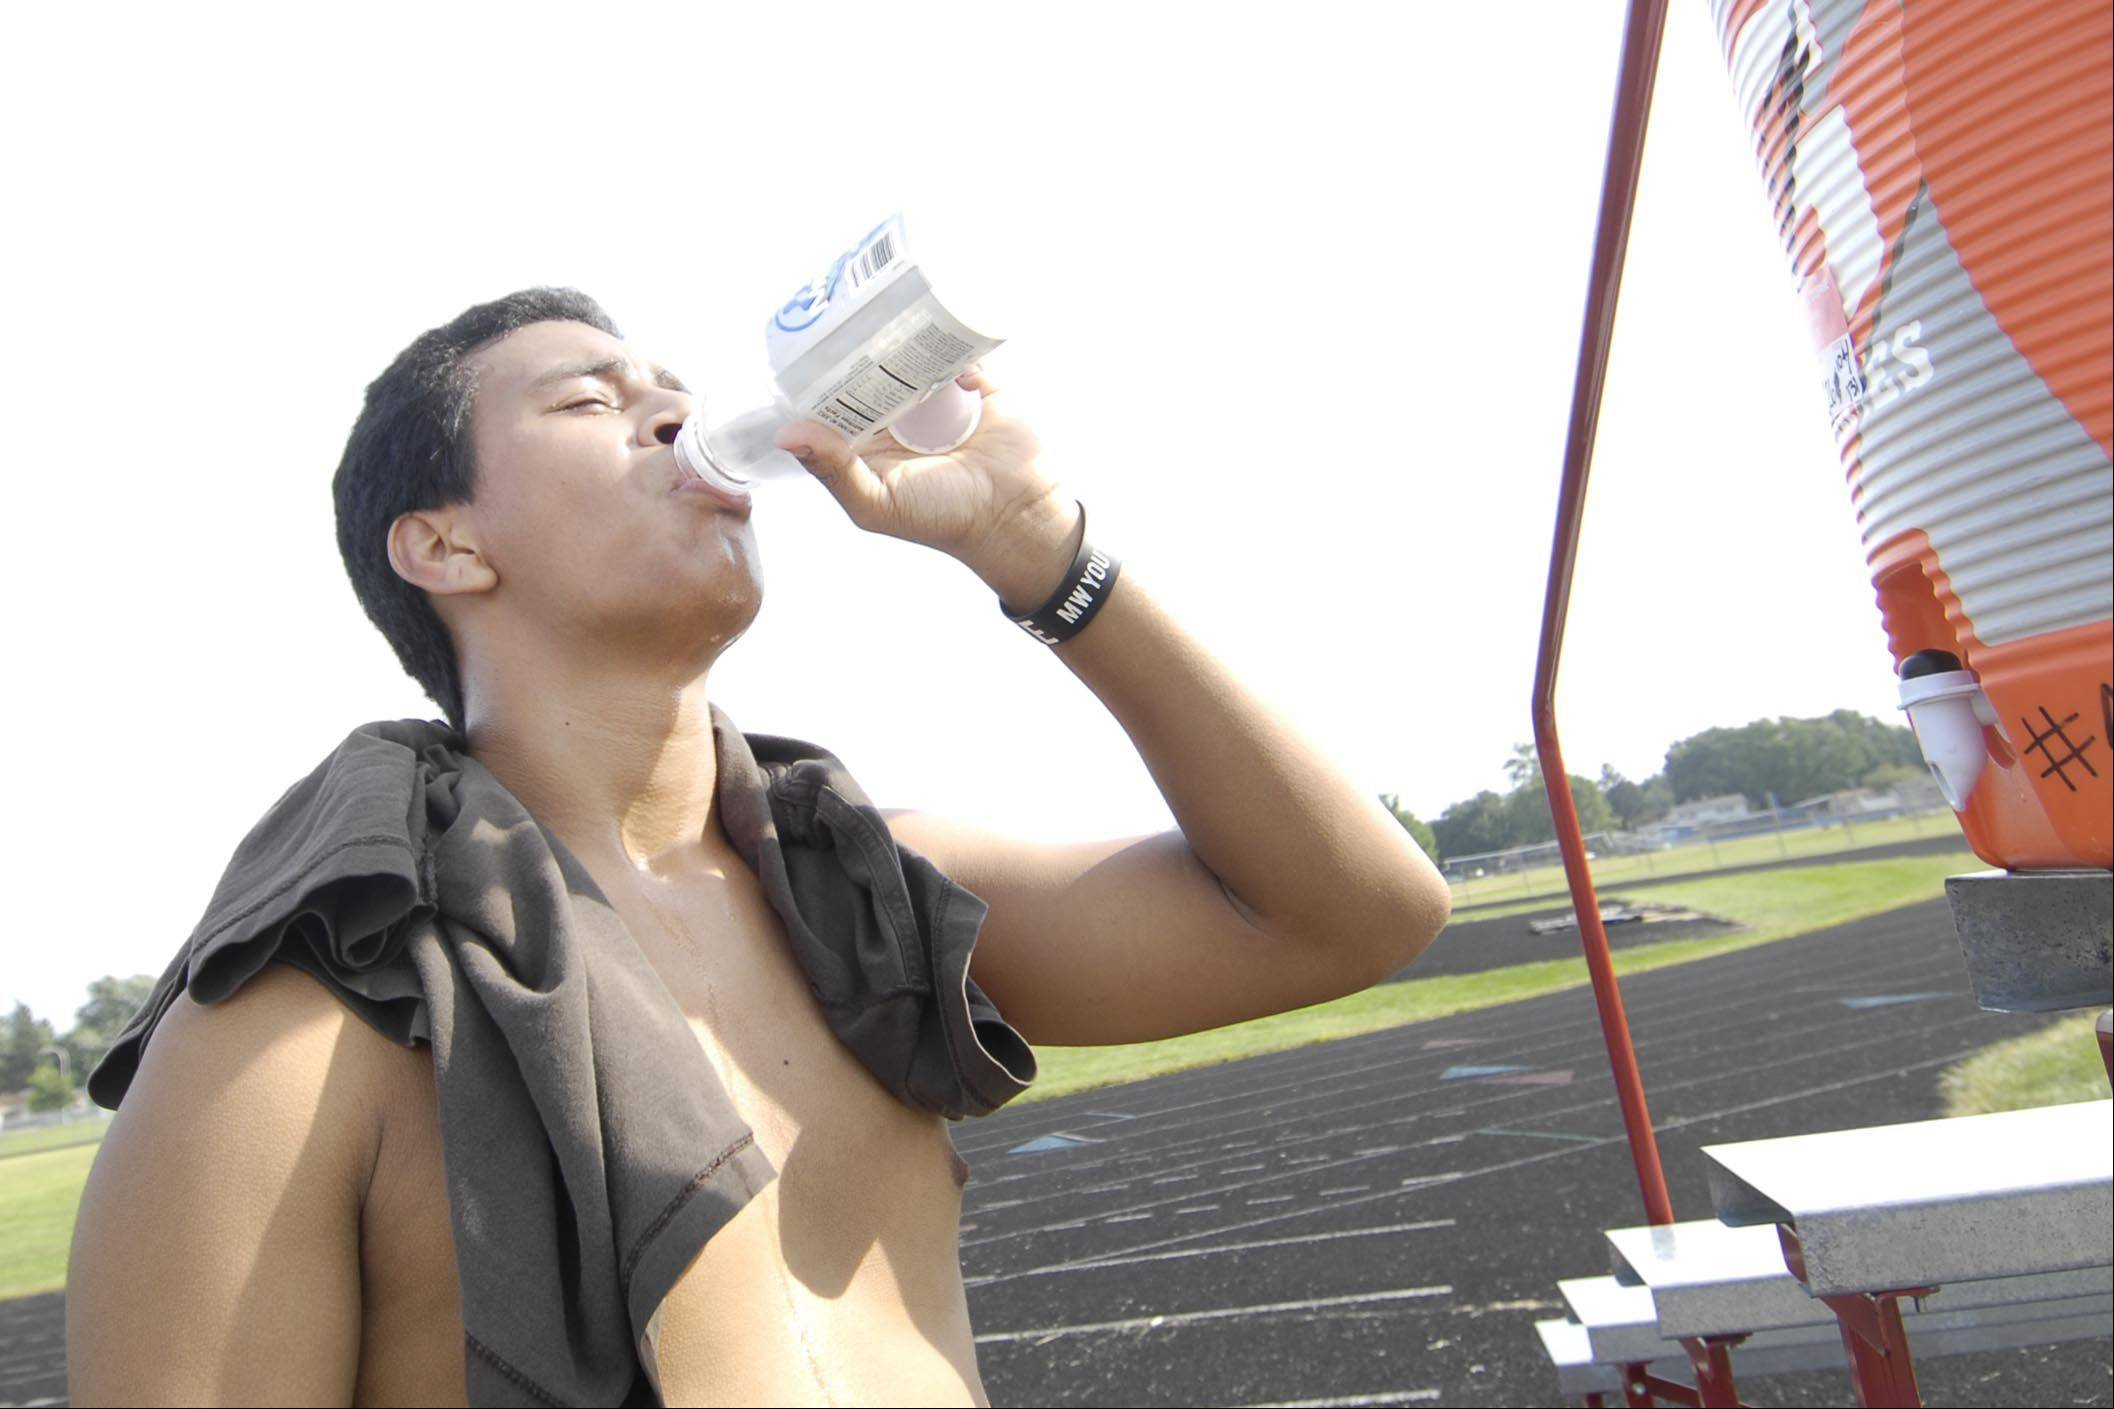 Alberto Velazquez, a Larkin High School senior, gets water at the end of cross country practice Monday. The team ran a one-mile time trial in the heat.